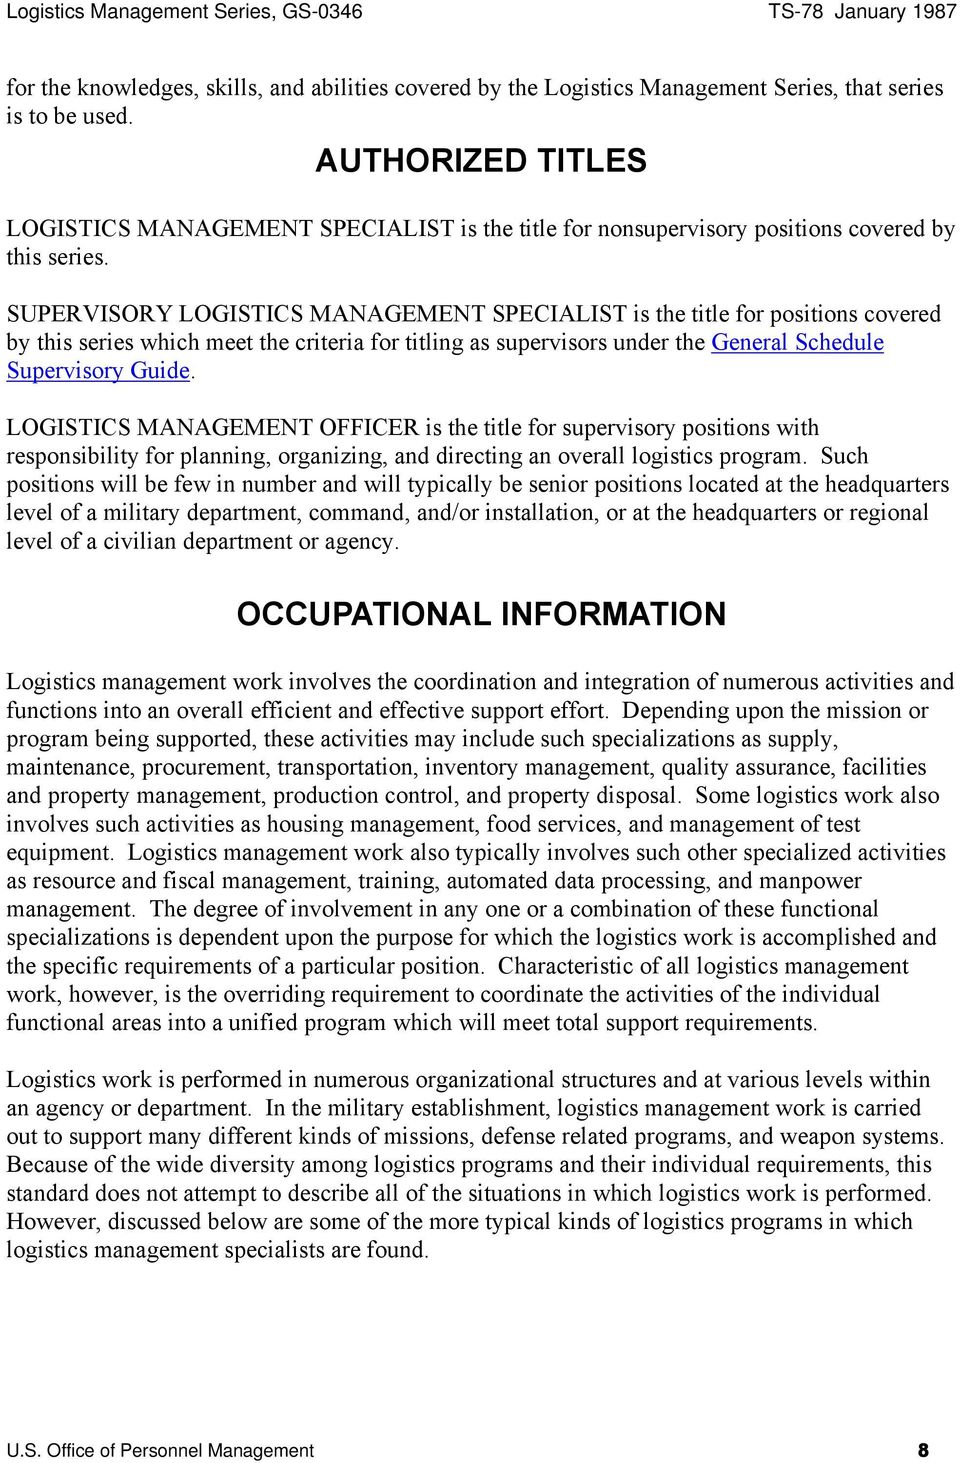 SUPERVISORY LOGISTICS MANAGEMENT SPECIALIST is the title for positions covered by this series which meet the criteria for titling as supervisors under the General Schedule Supervisory Guide.